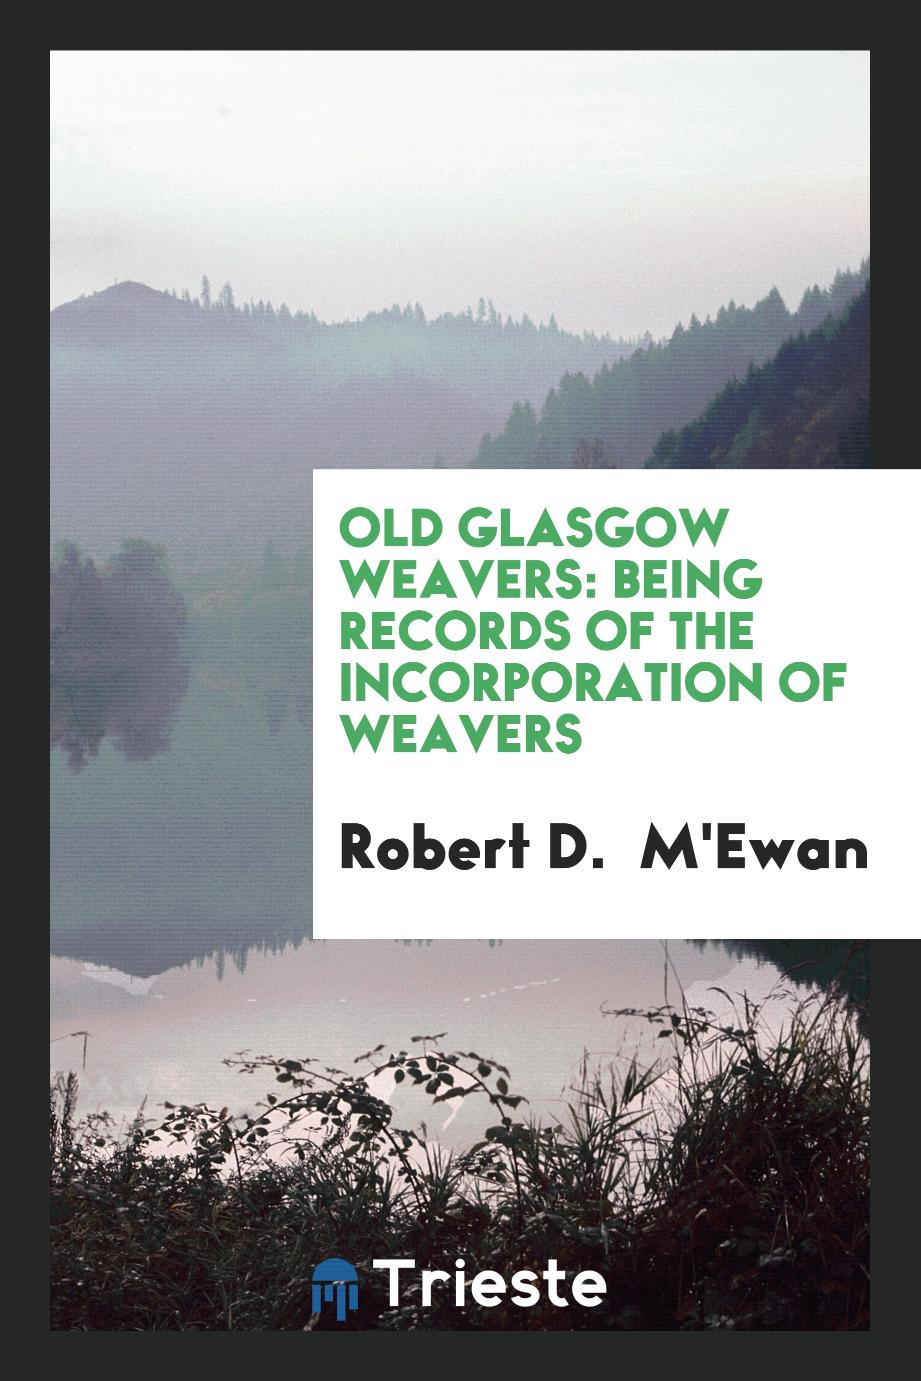 Old Glasgow Weavers: Being Records of the Incorporation of Weavers